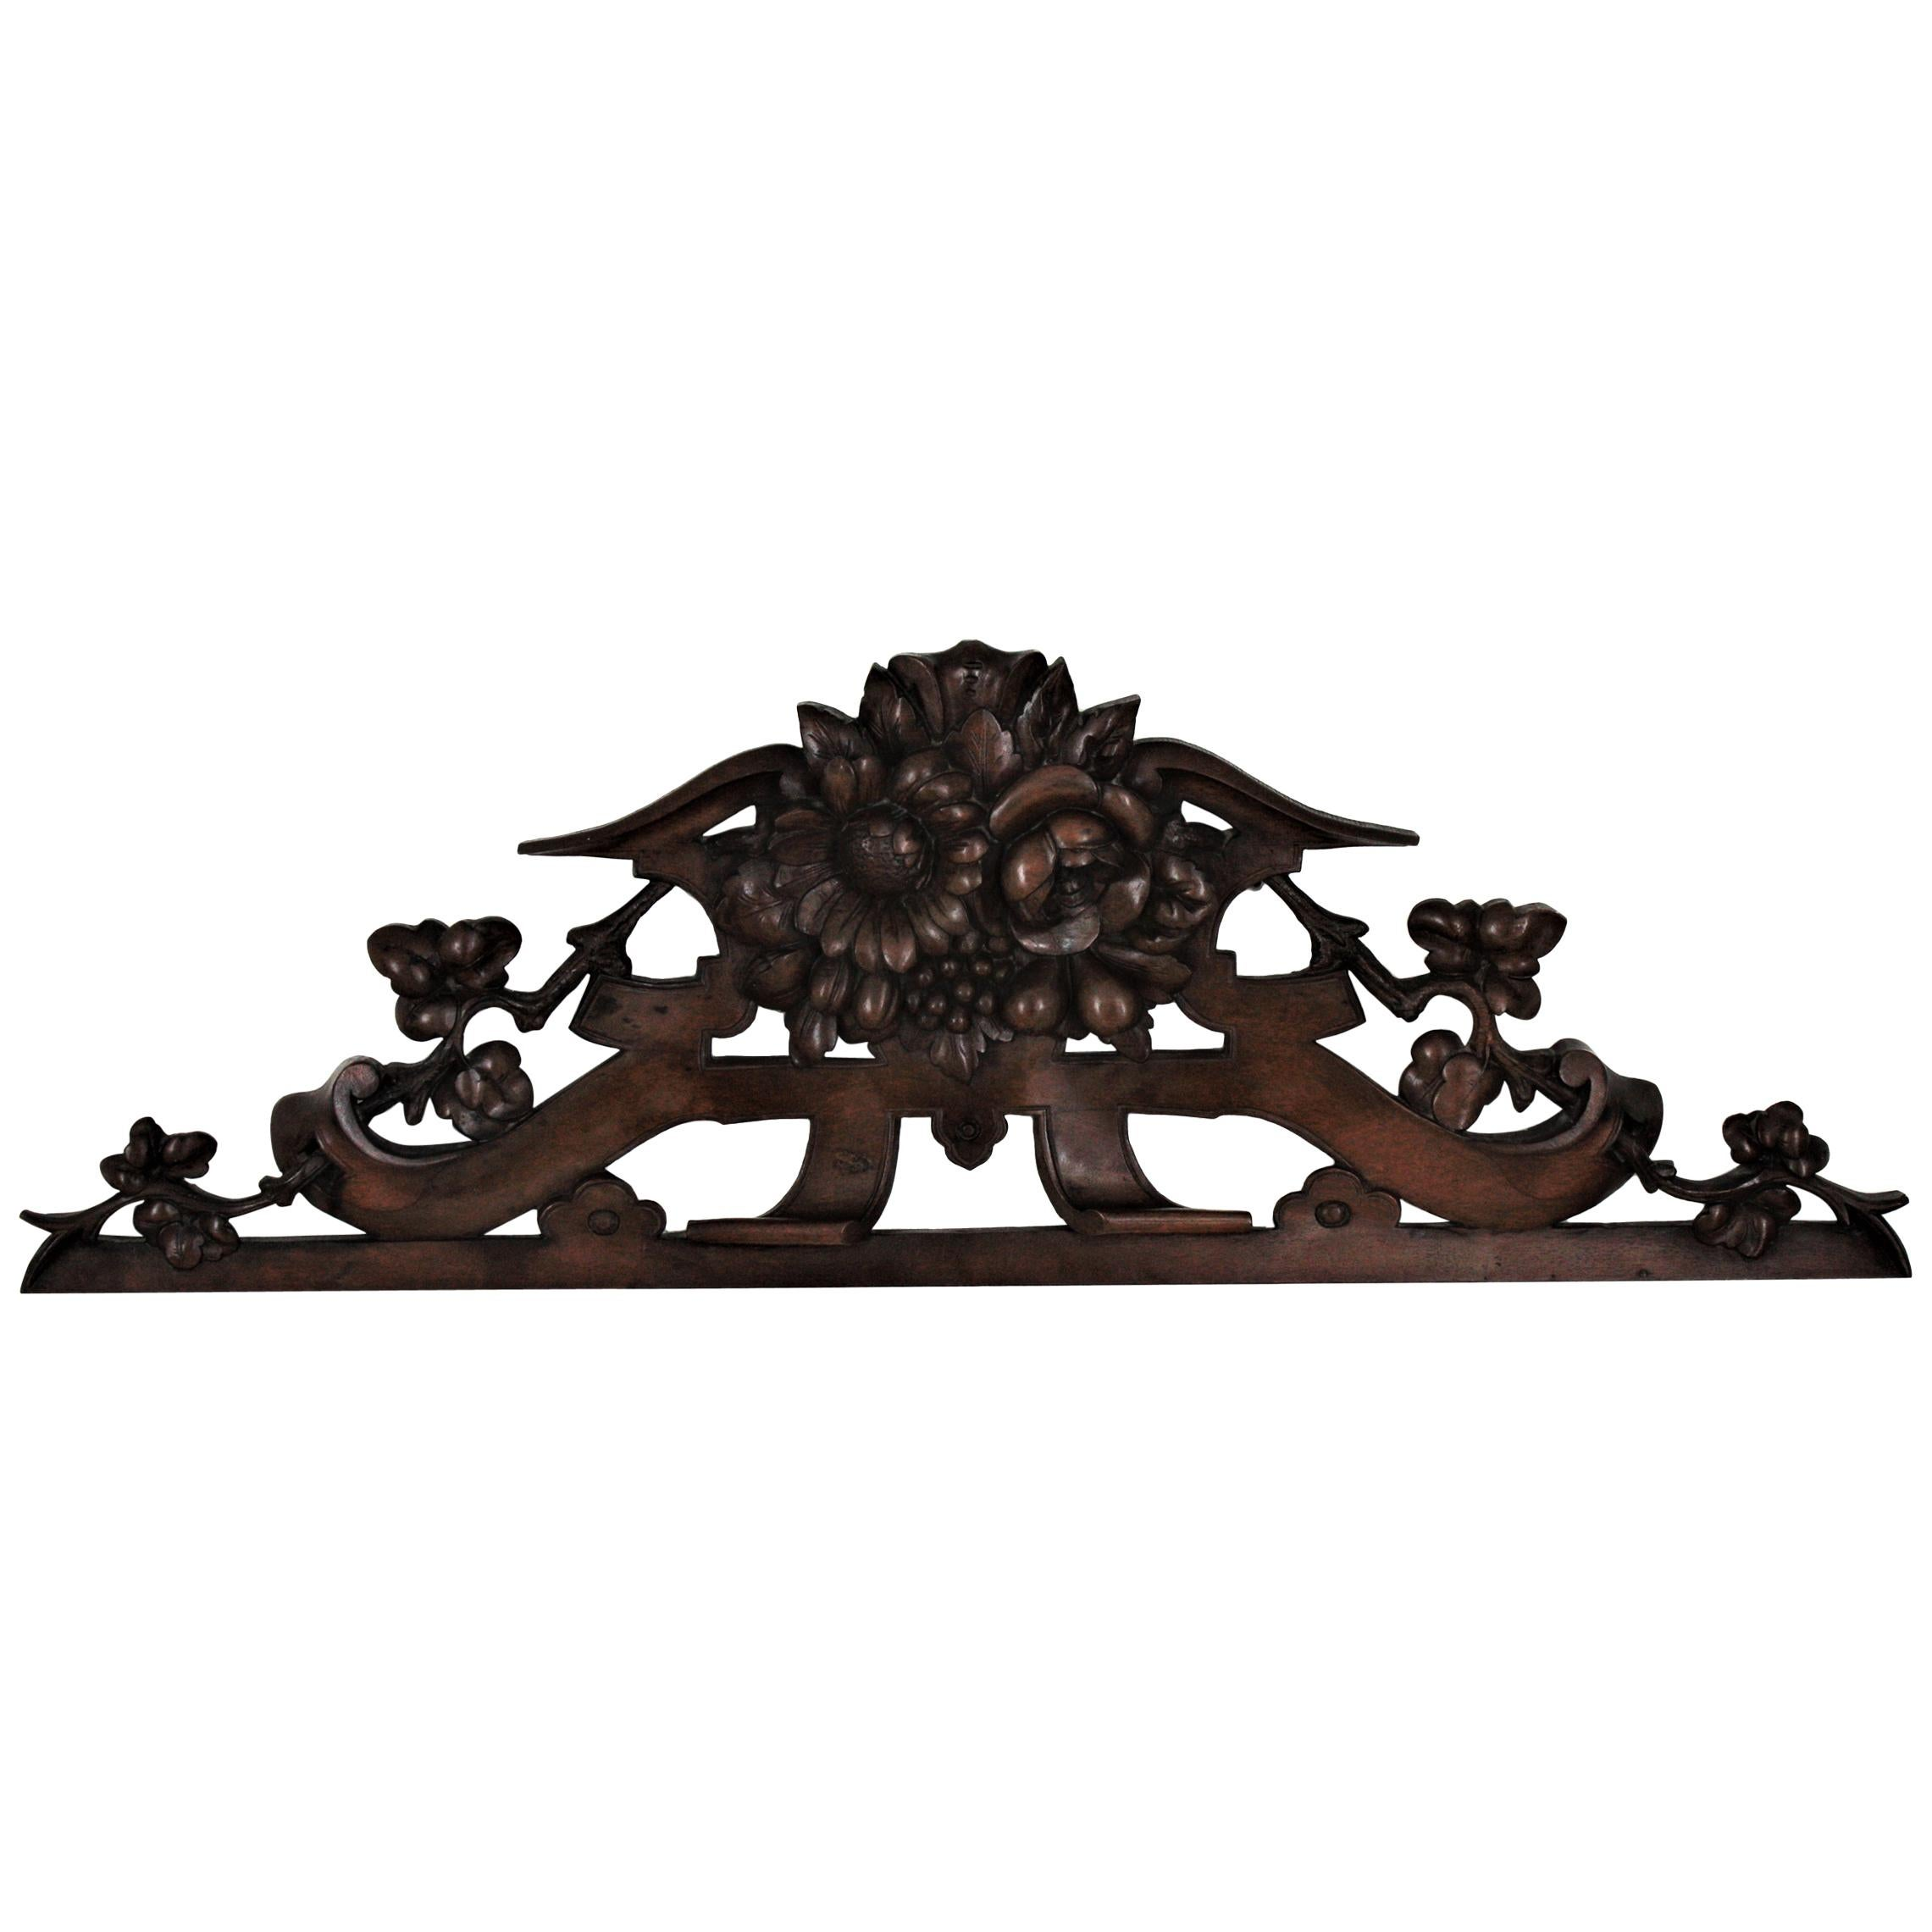 French 19th Century Black Forest Carved Walnut Fruit and Flower Pediment / Crest